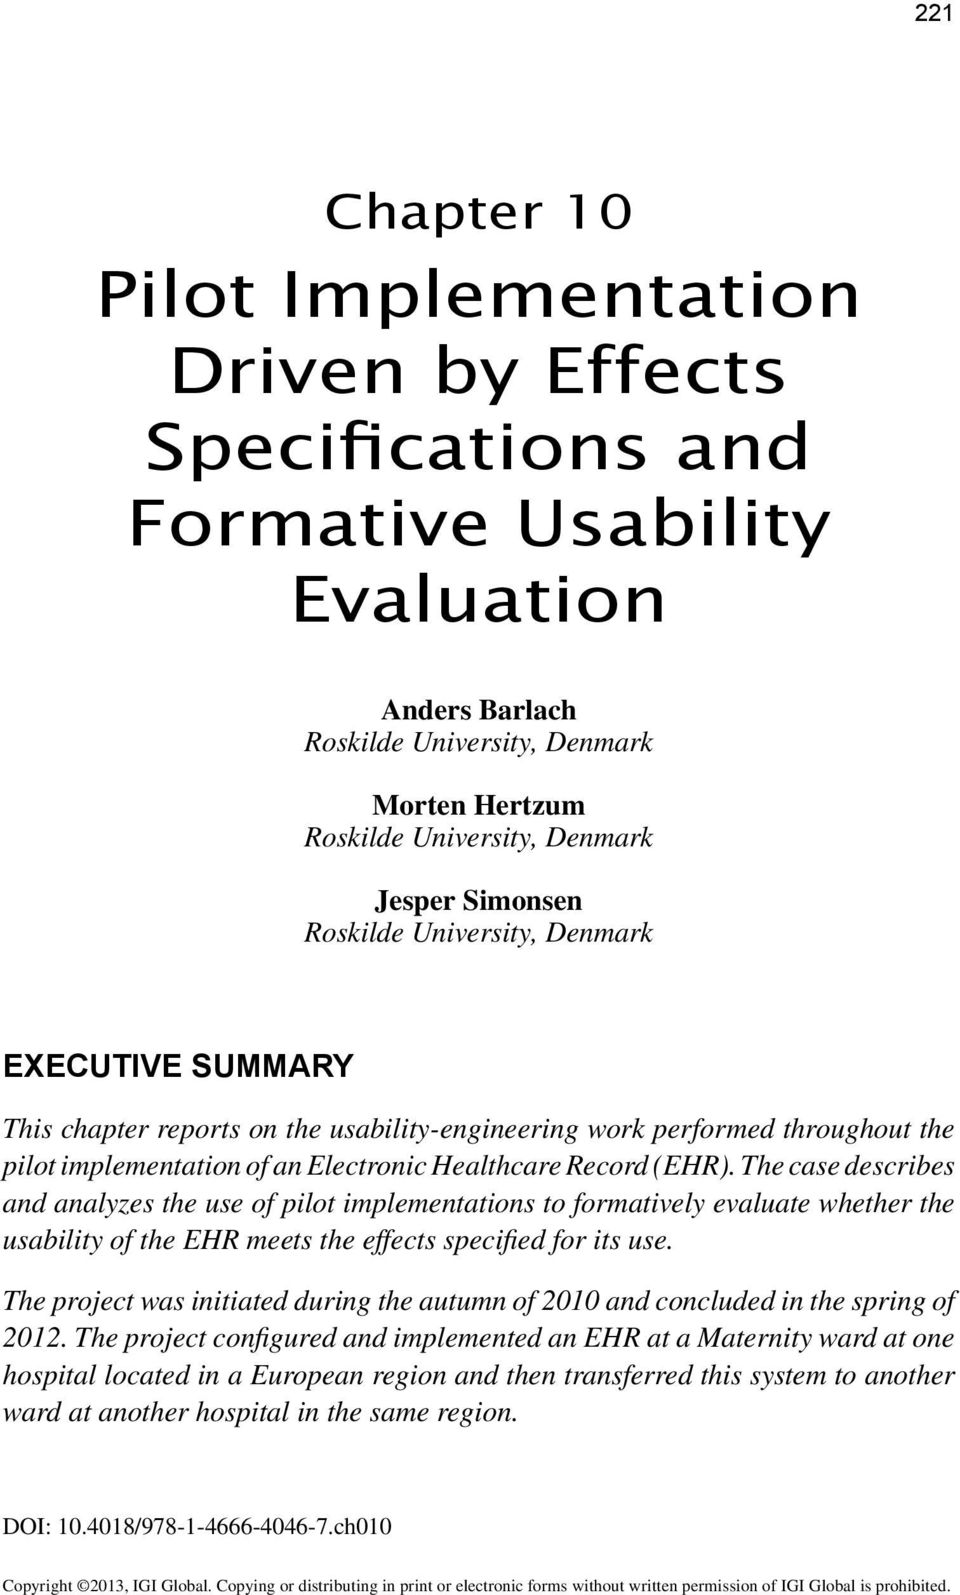 The case describes and analyzes the use of pilot implementations to formatively evaluate whether the usability of the EHR meets the effects specified for its use.